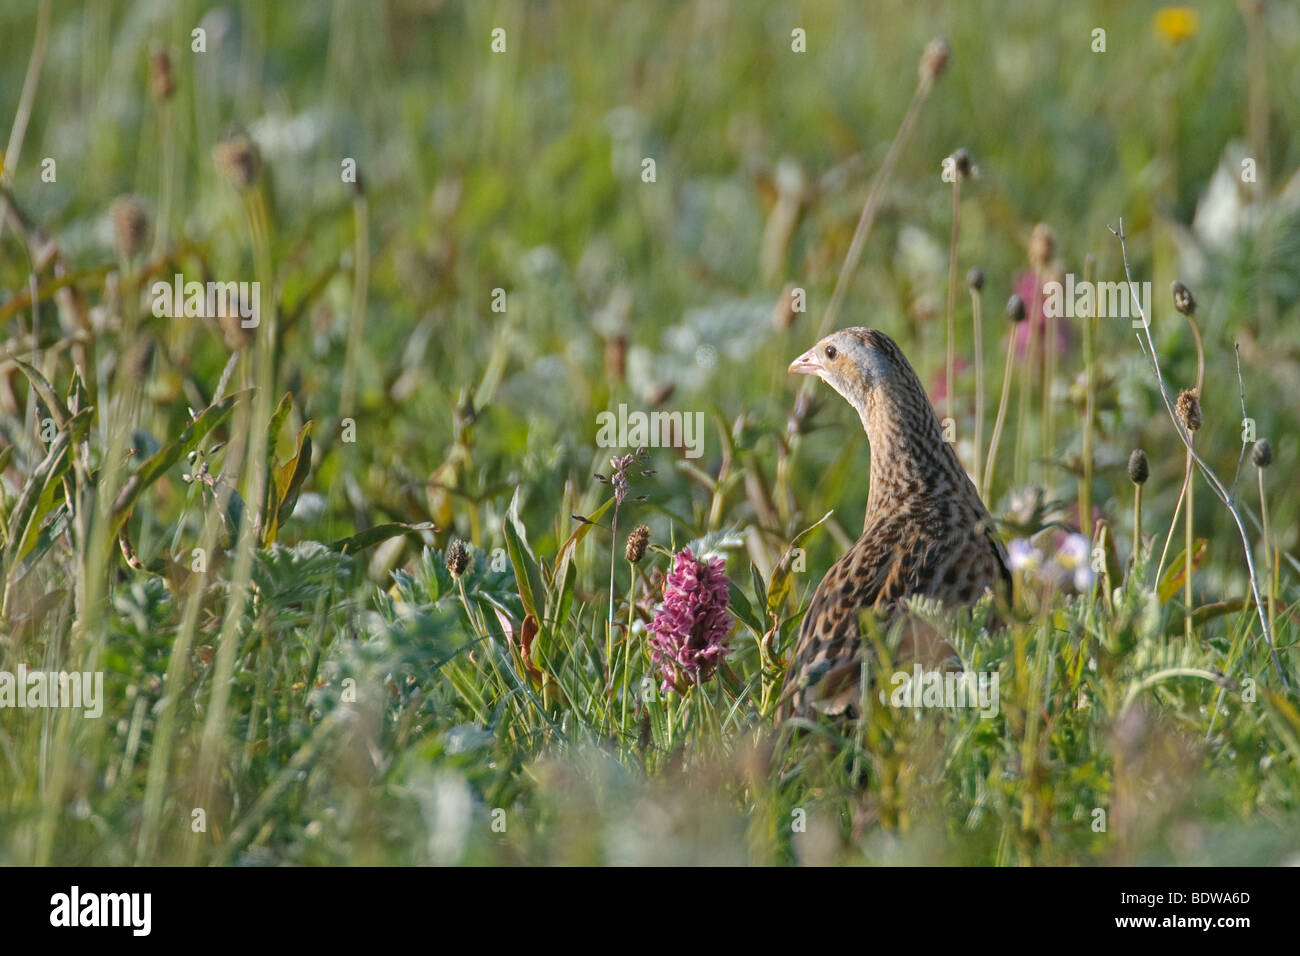 Corncrake Crex crex adult male in hay meadow. Island of North Uist, Western Isles, Scotland. - Stock Image